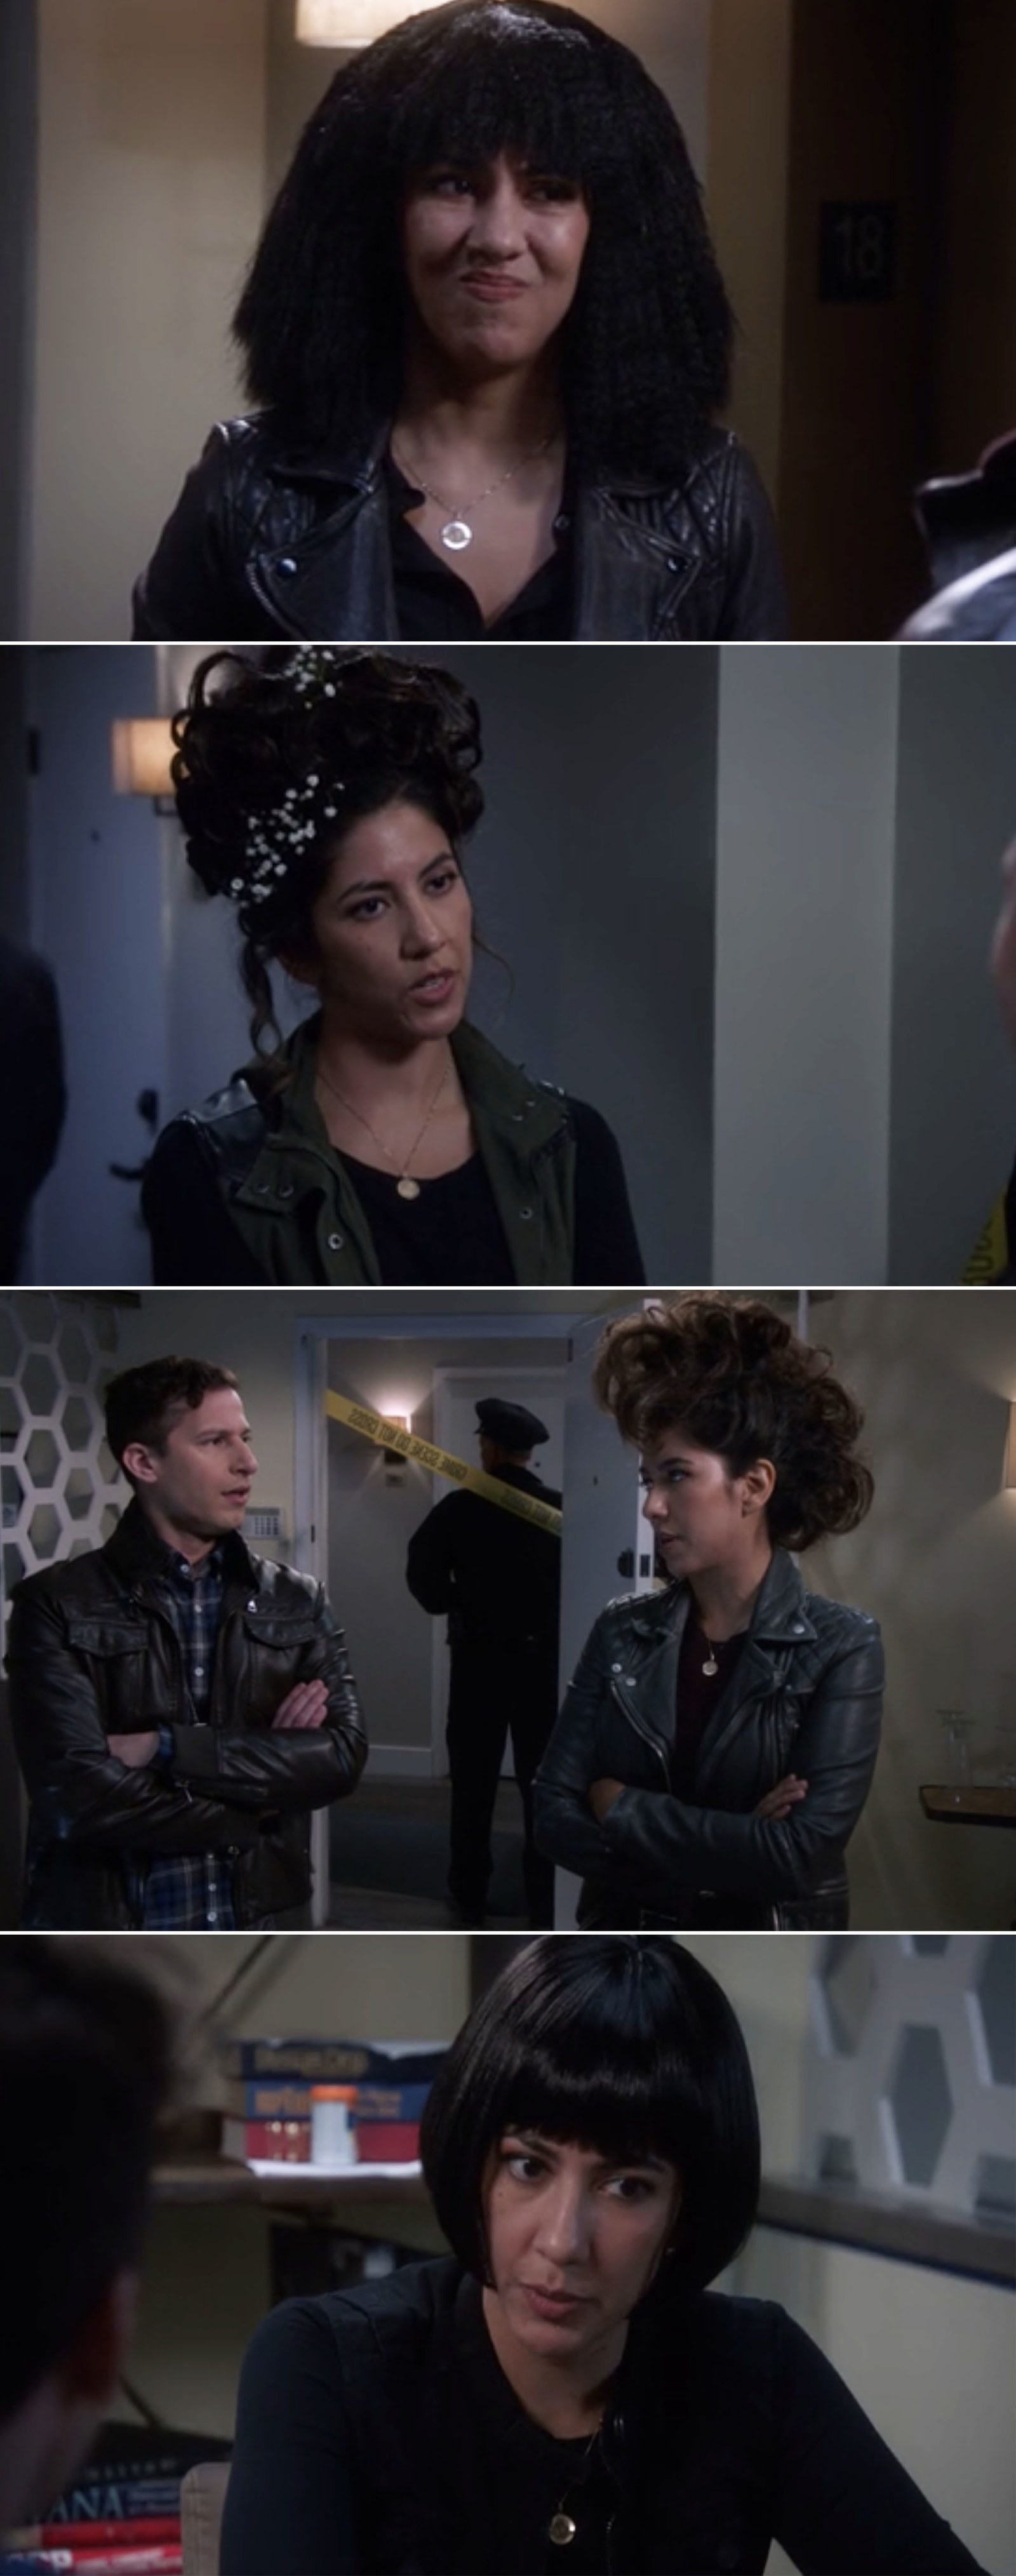 Also, we just need to take a moment to appreciate all of Rosa's hairstyles this episode. True love is letting your girlfriend style your hair over and over again.